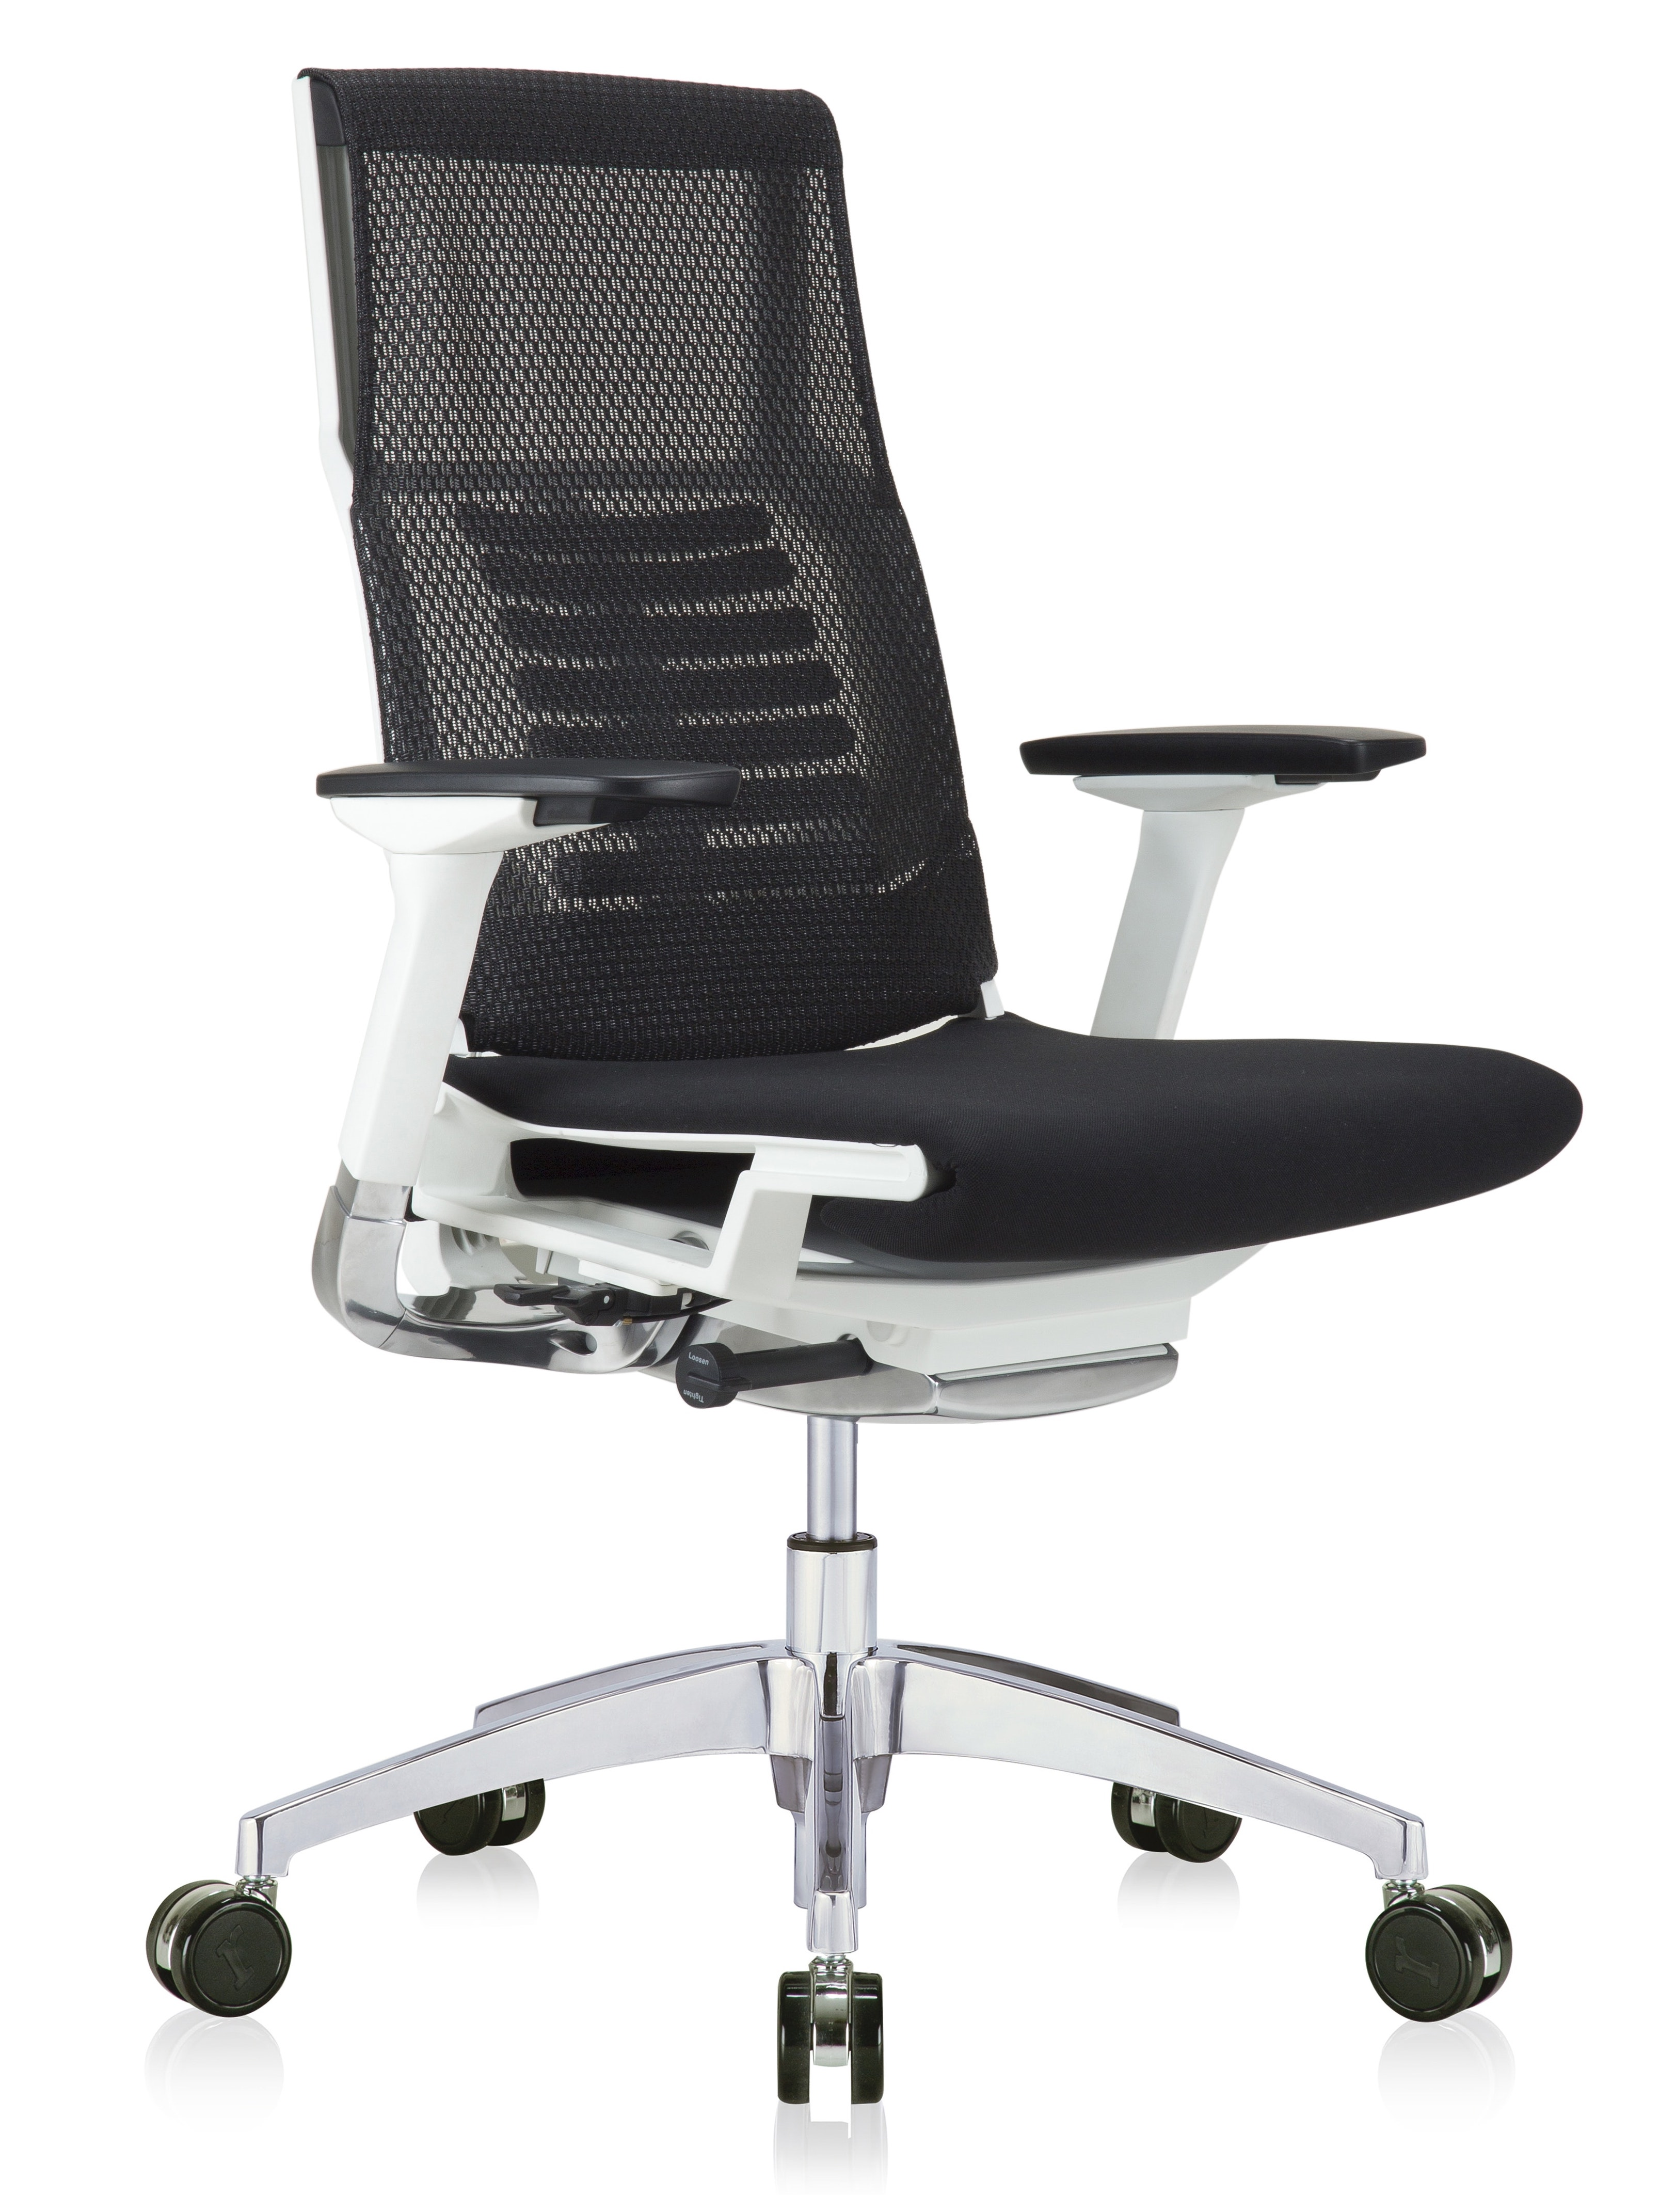 eurotech powerfit white frame office chair with black mesh back and fabric seat